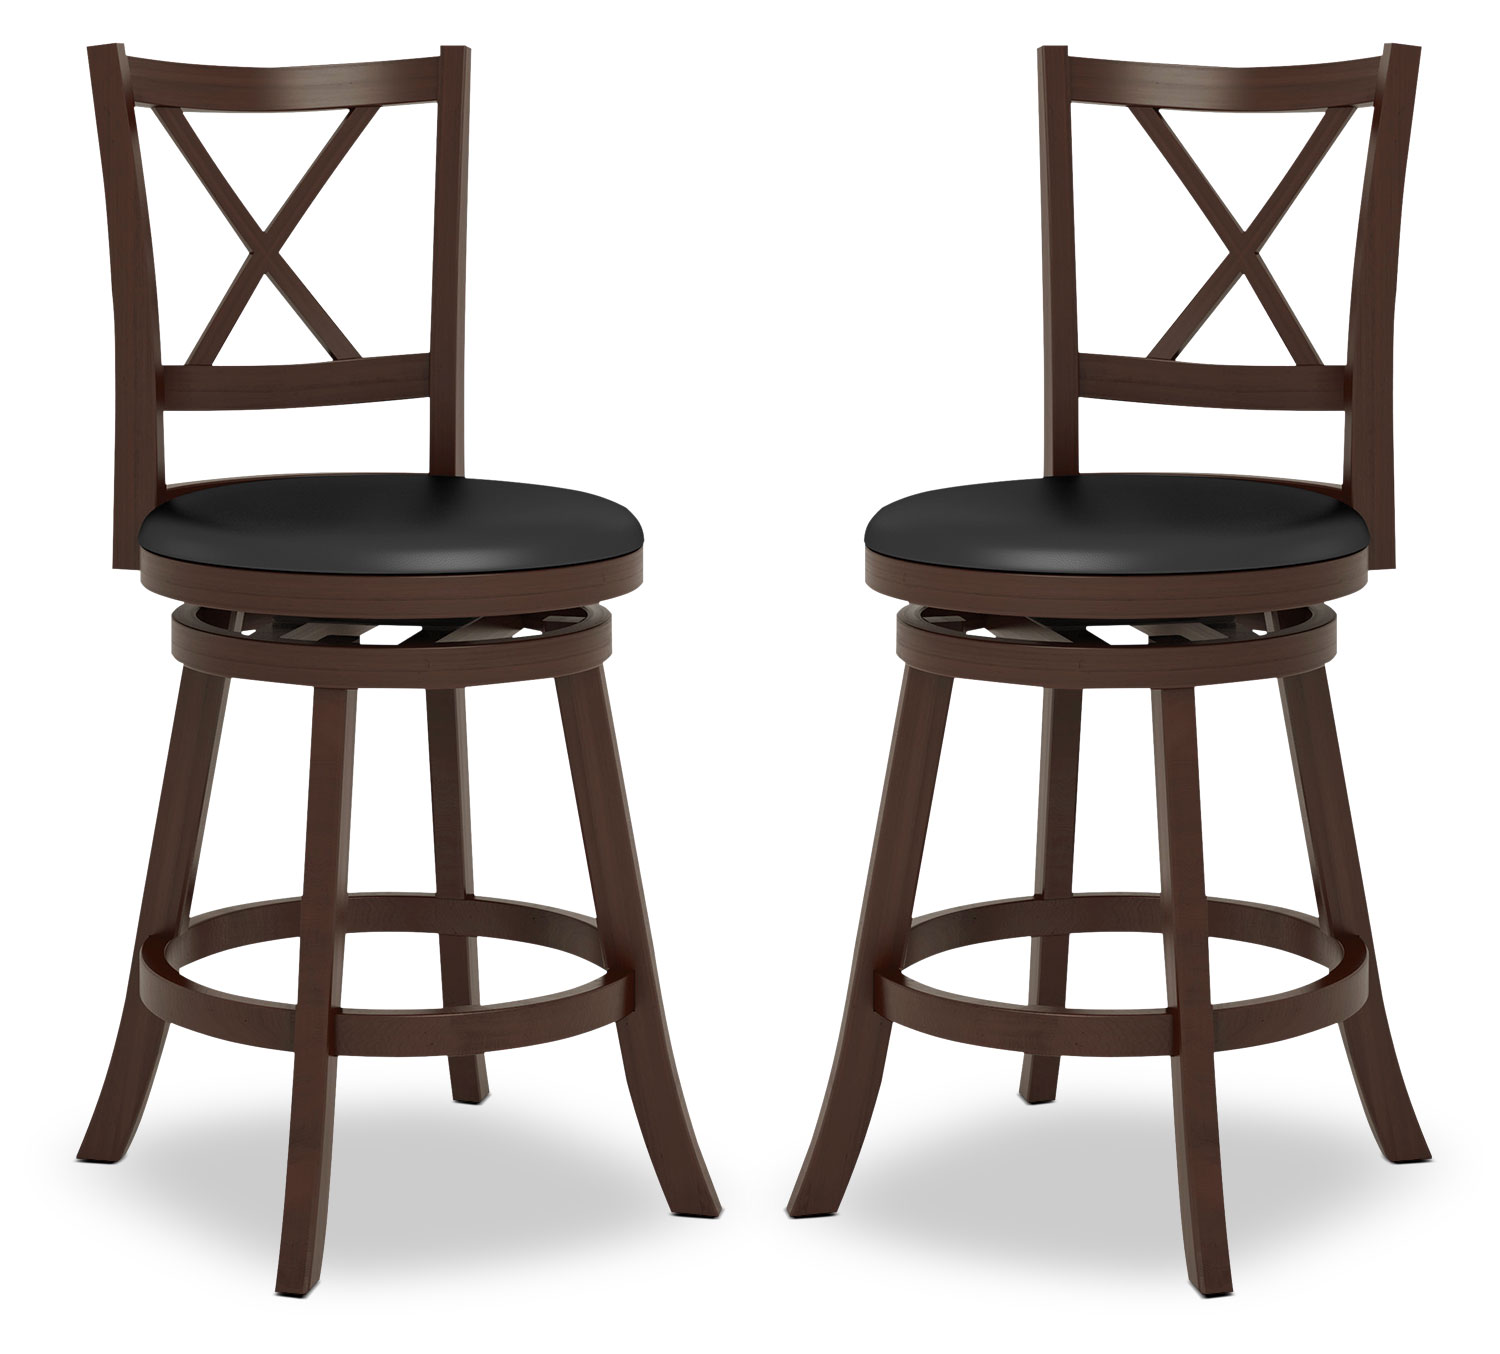 "Woodgrove 38"" Bar Stool, Set of 2 – Cross Back"